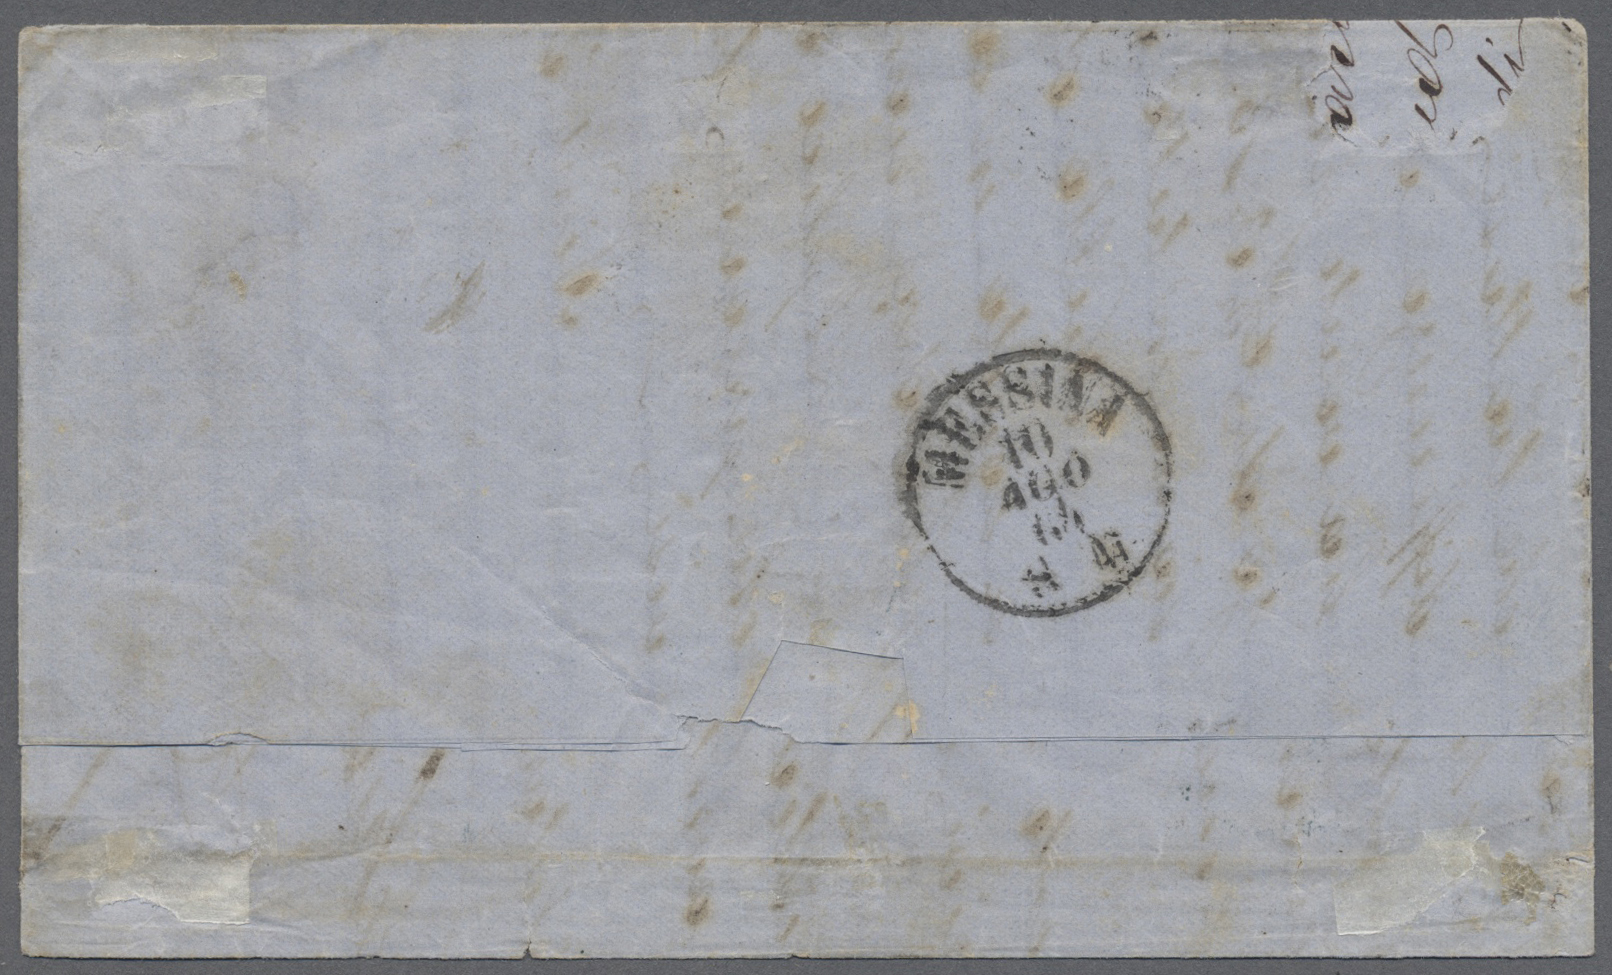 Lot 1052 - Italien - Stempel  -  Auktionshaus Christoph Gärtner GmbH & Co. KG Auction #41 Special auction part one